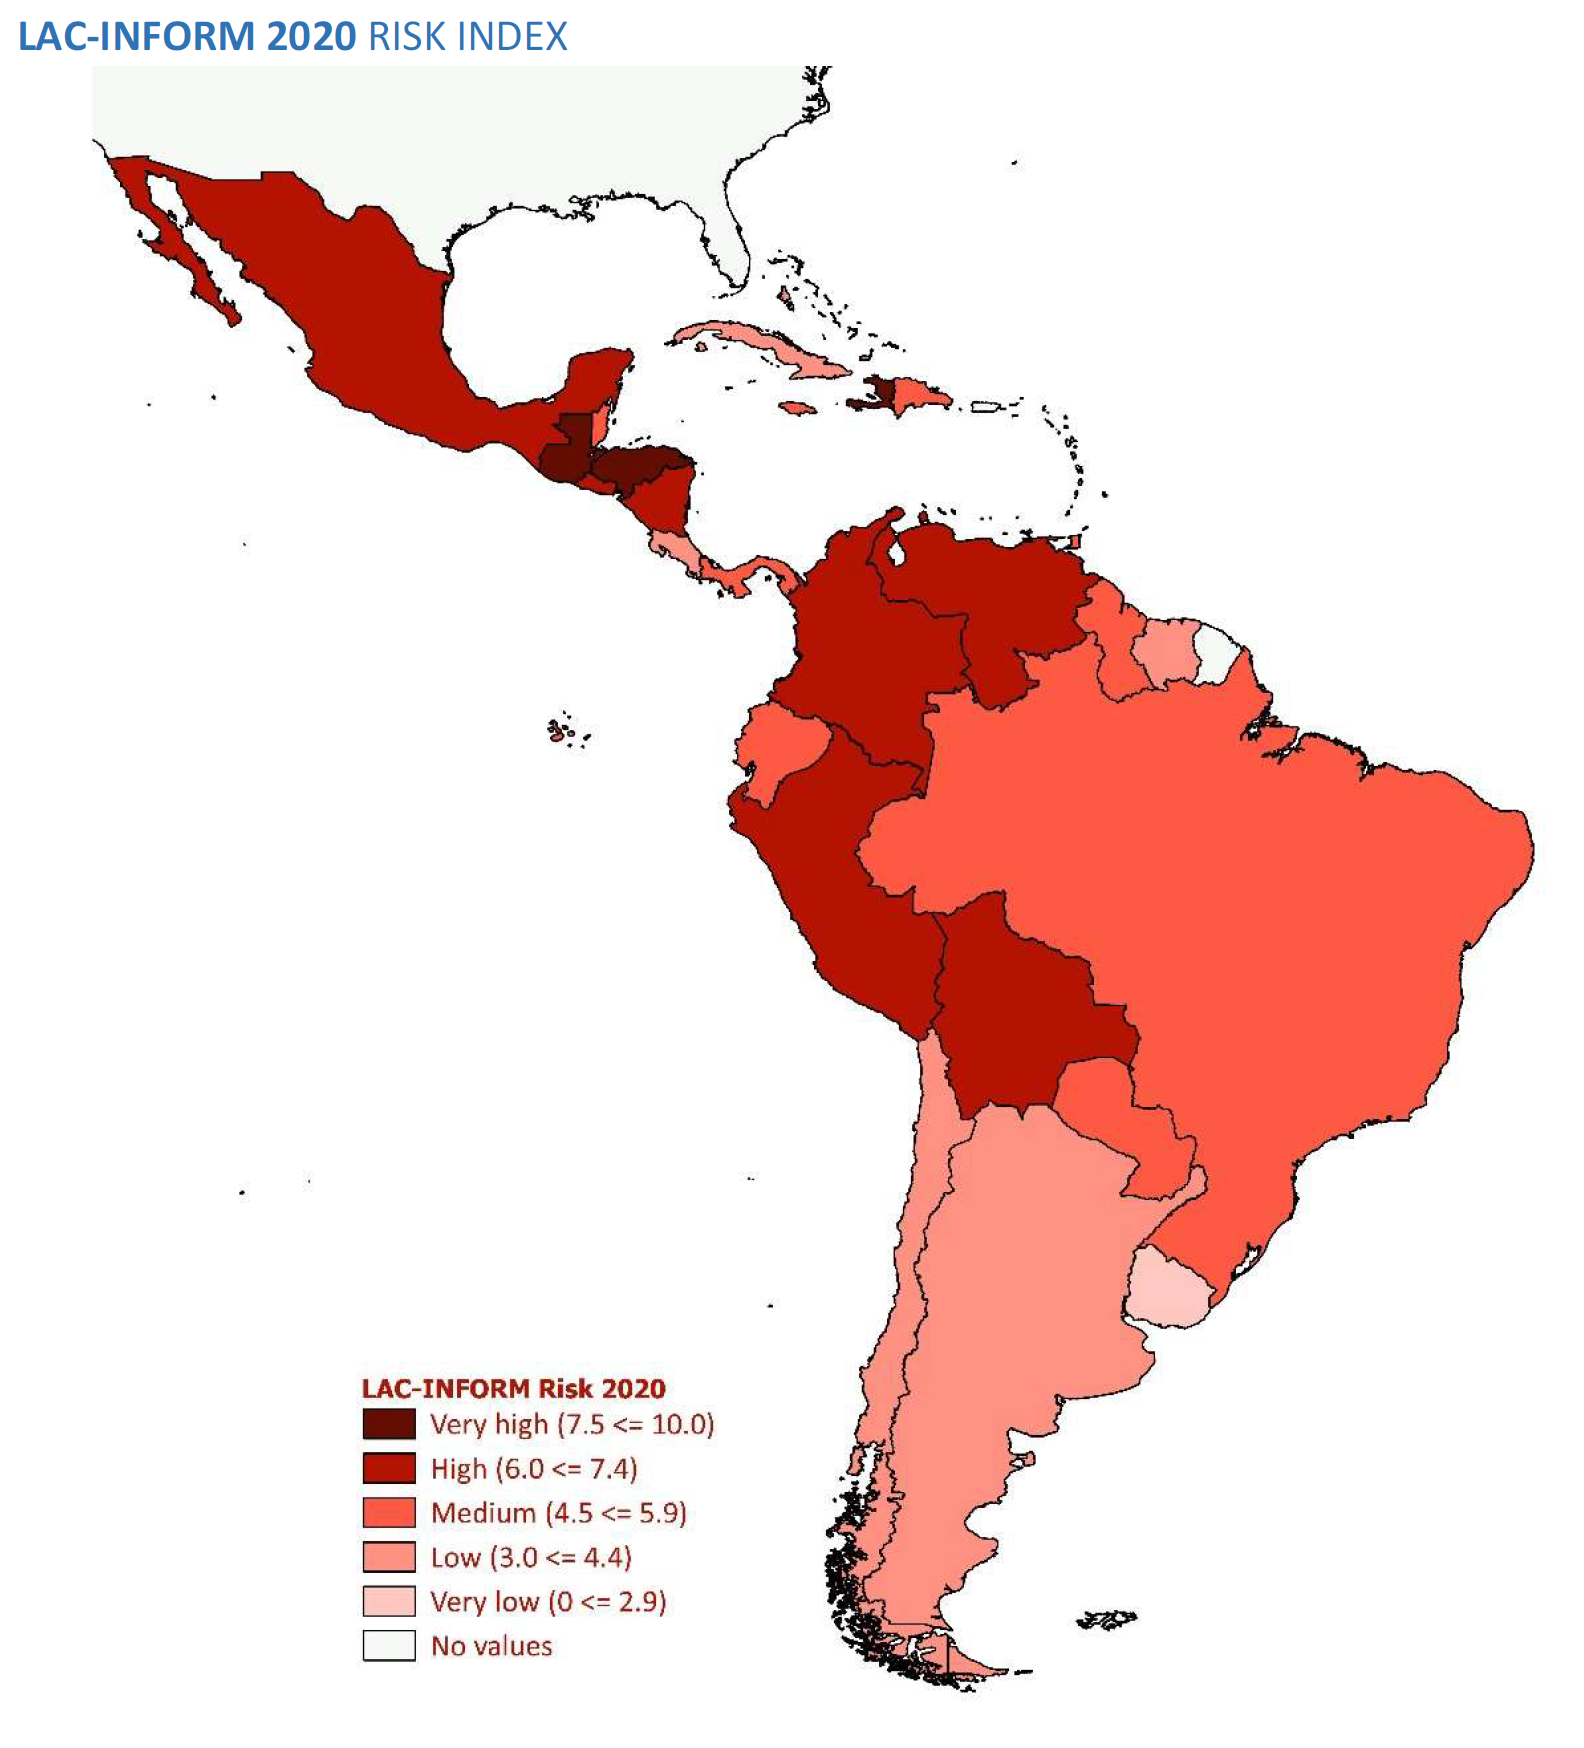 Subnational - Latin America and Caribbean